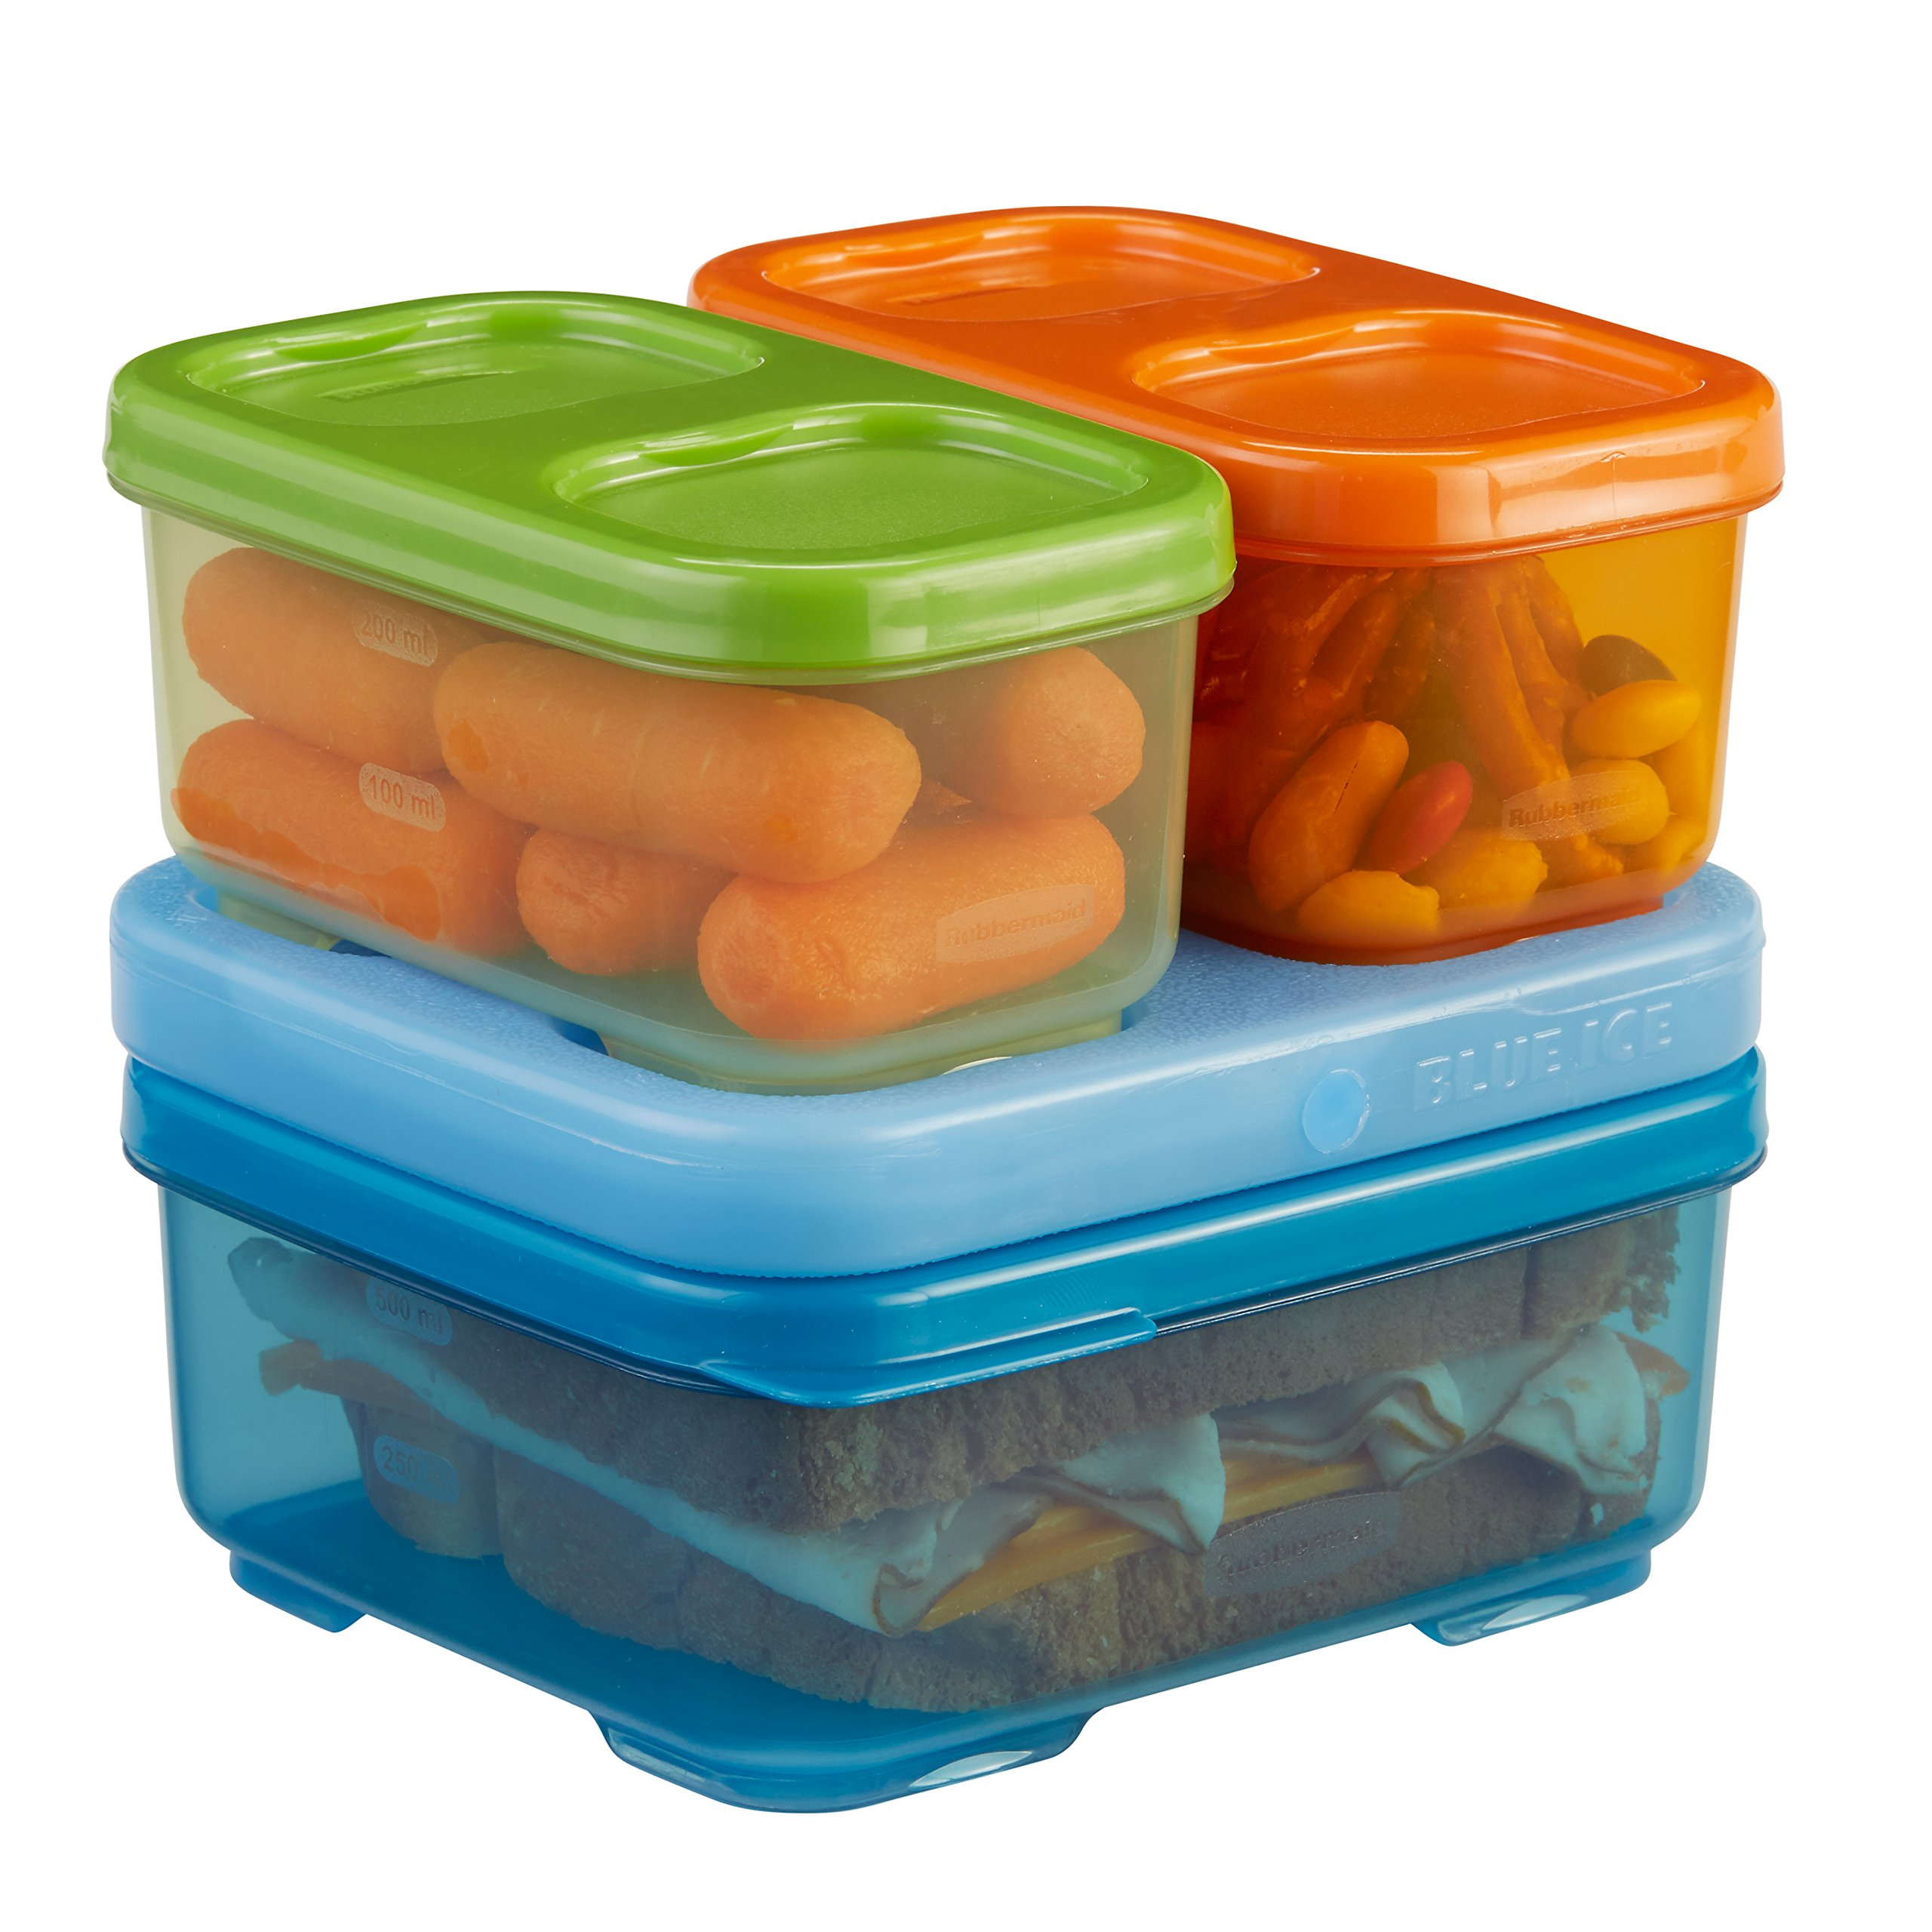 Rubbermaid LunchBlox Kids Lunch Box Container, Tall, Assorted Colors 1866739